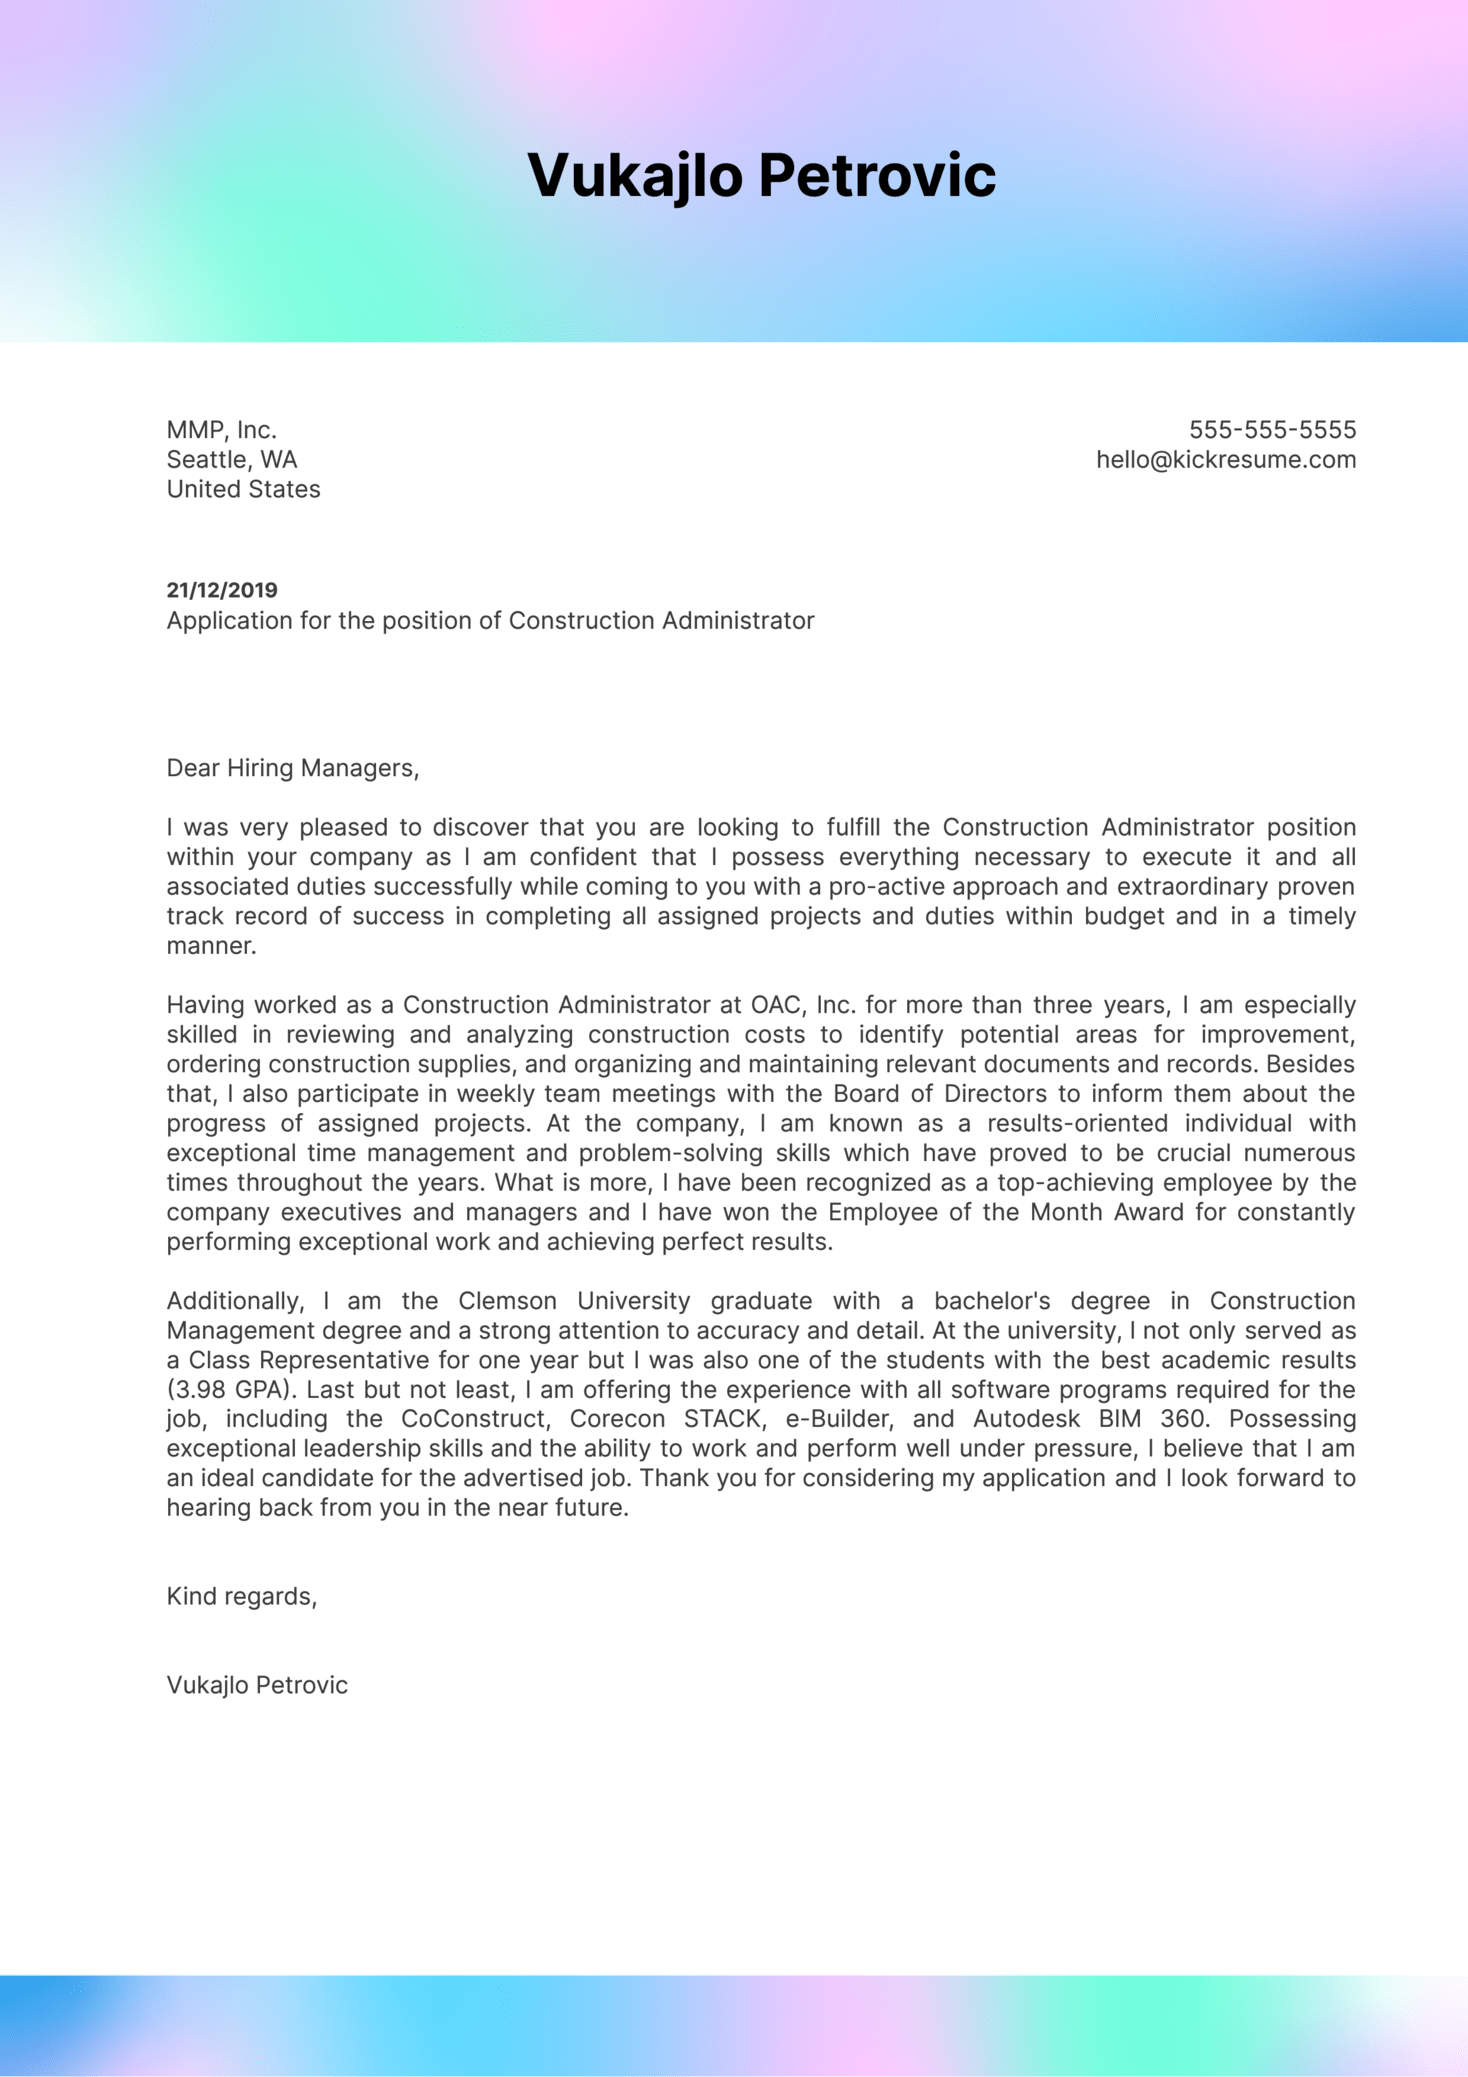 Construction Administrator Cover Letter Sample